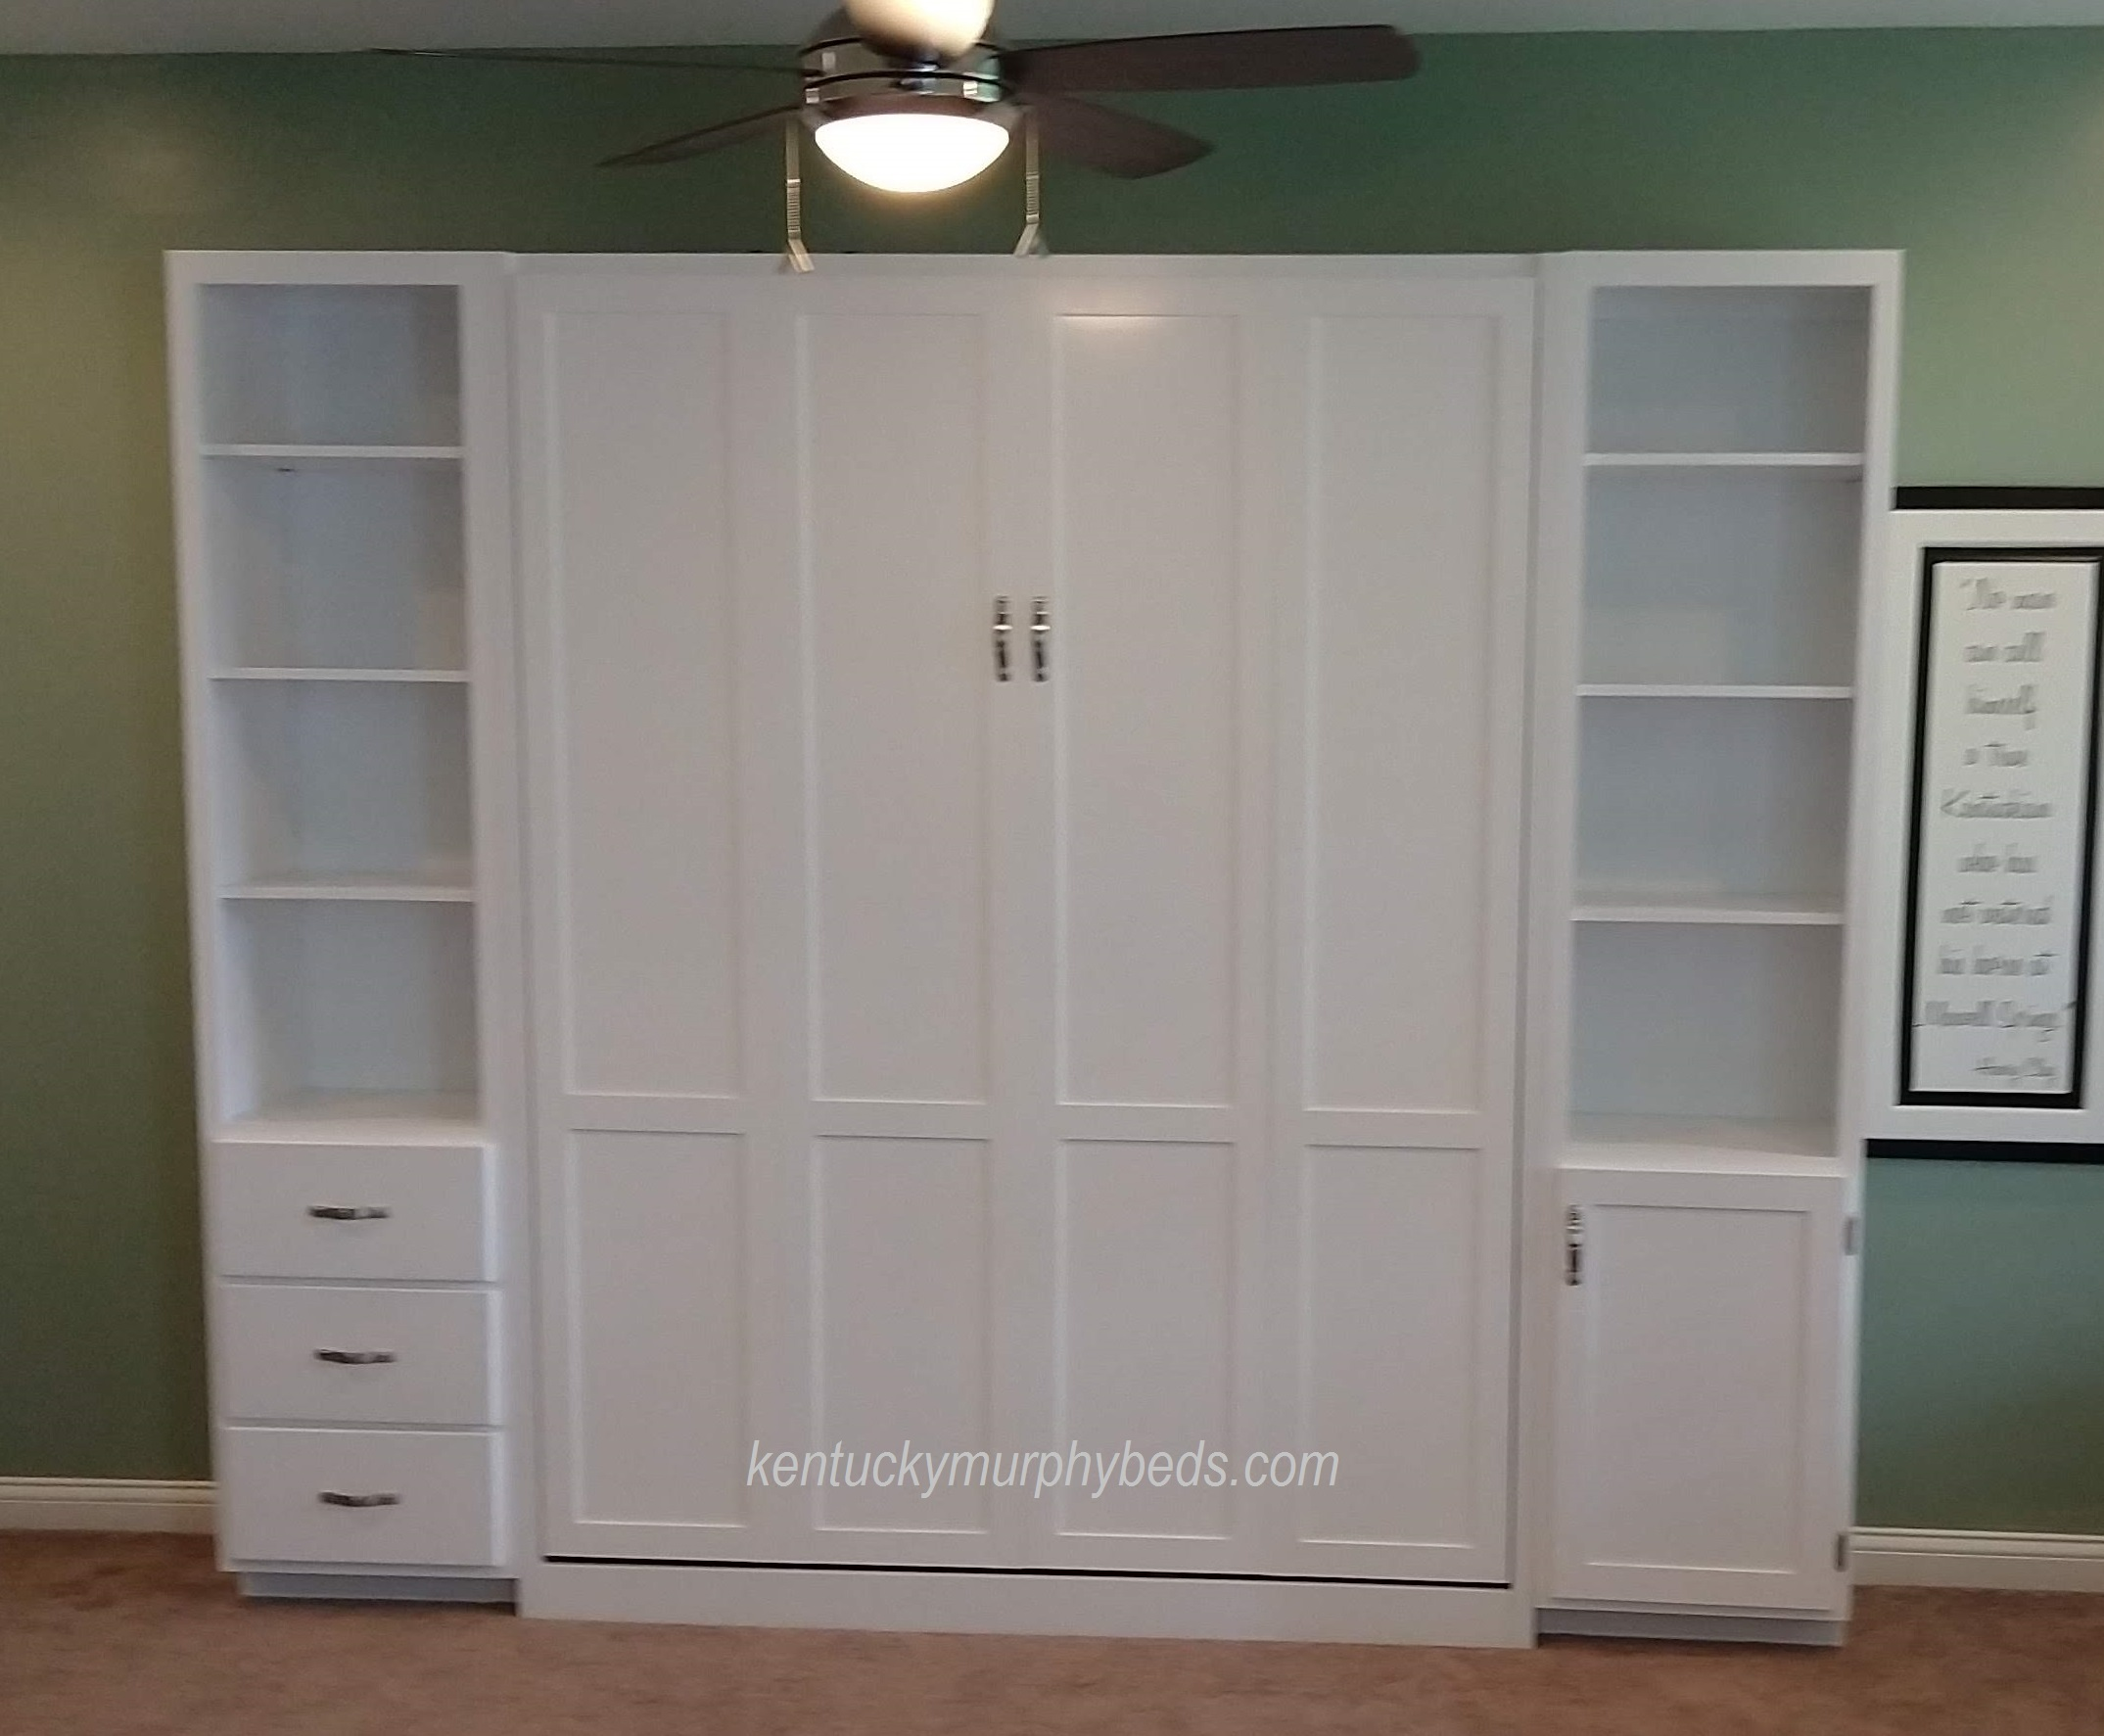 White queen panel door Murphy bed with shaker trim and two accessory cabinets and LED dimmable lights - closed view